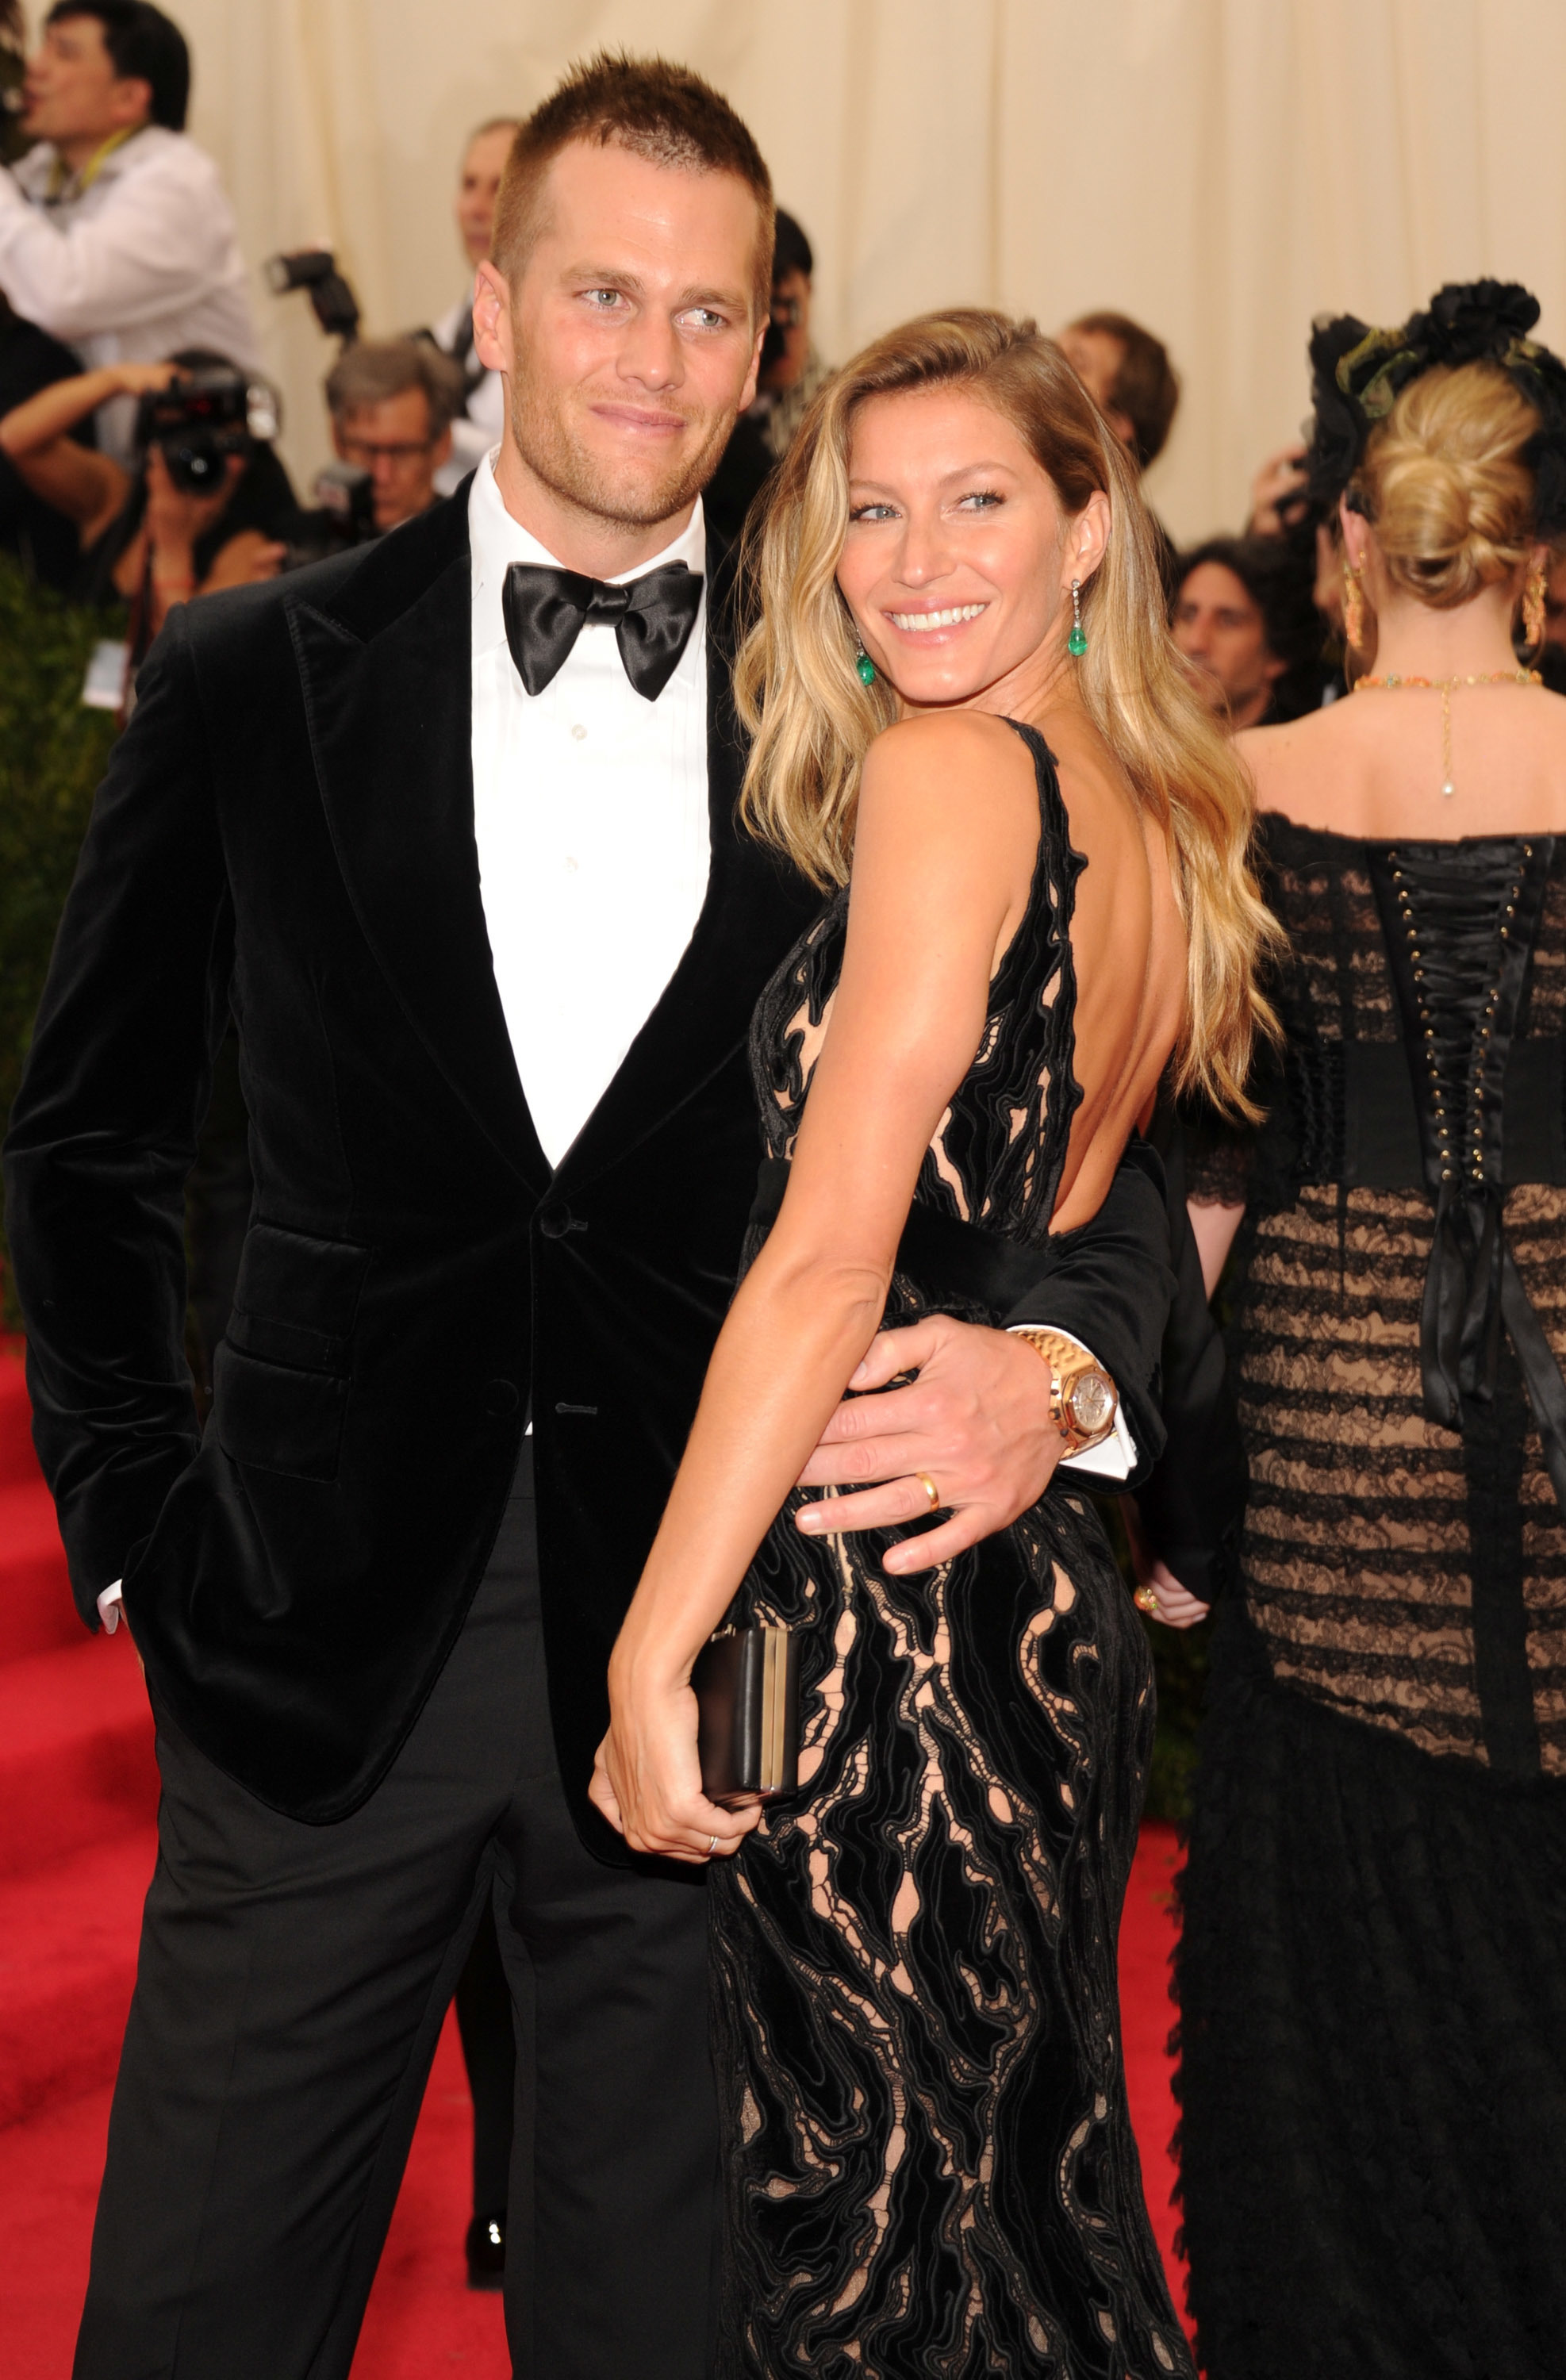 Tom Brady: My marriage is doing just fine